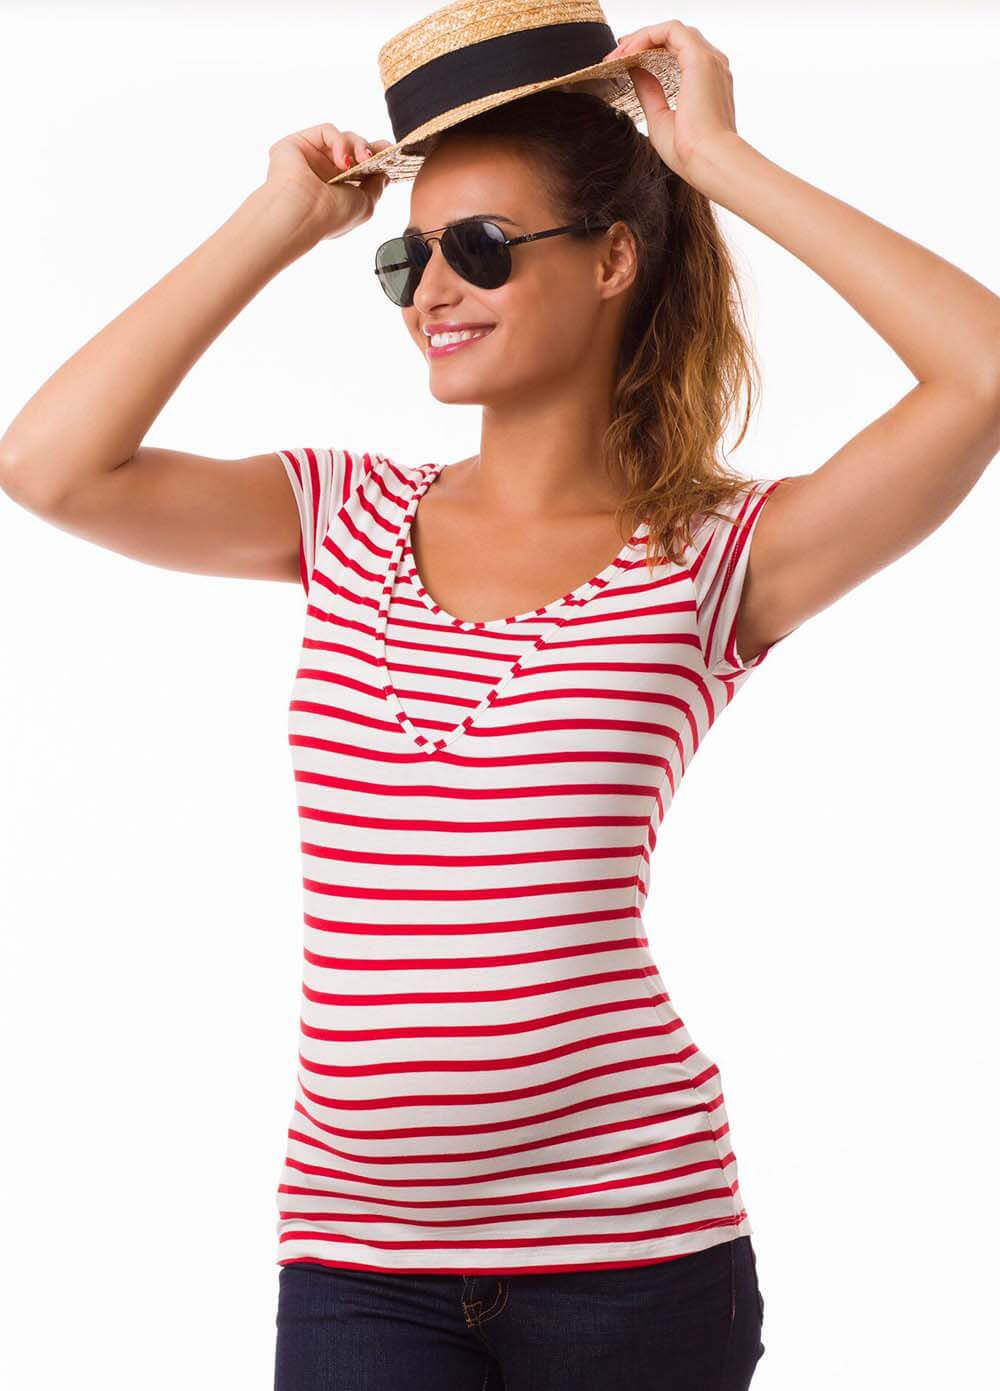 Queen Bee Milkizzy Lise Nursing Top in Red Stripes by Pomkin